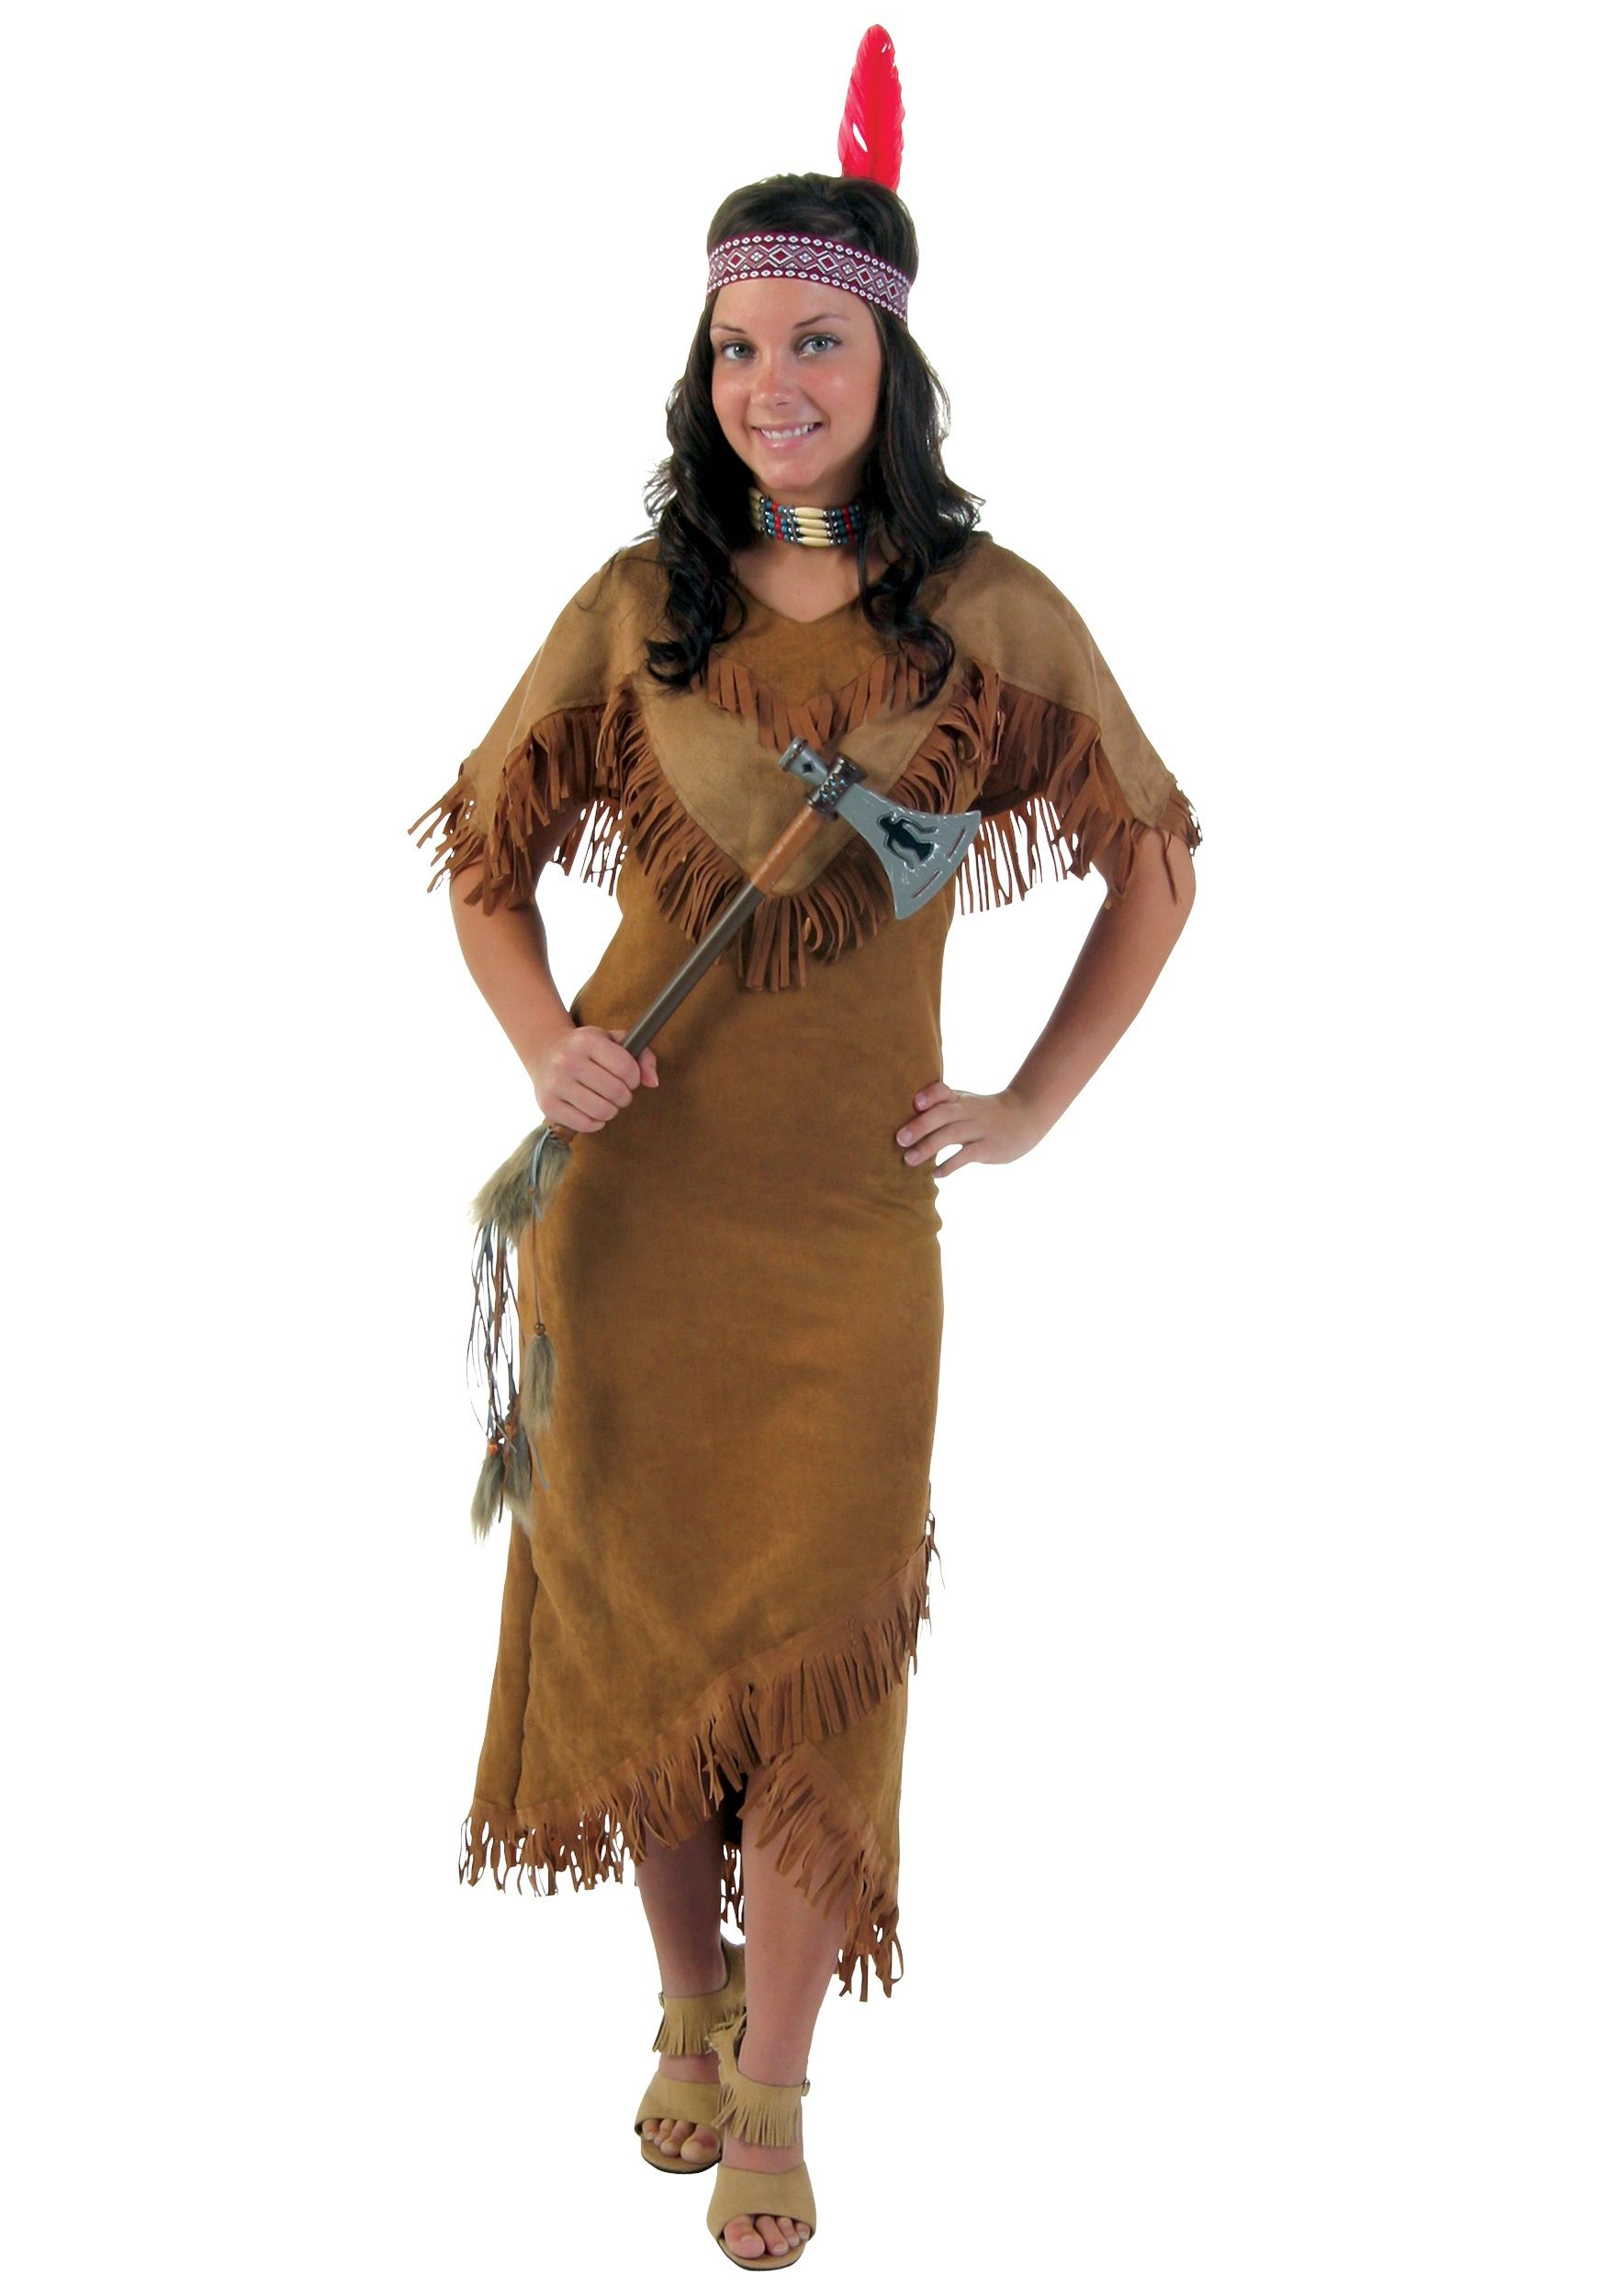 halloween costumes plus size deluxe womens indian costume - Halloween Costume Plus Size Ideas